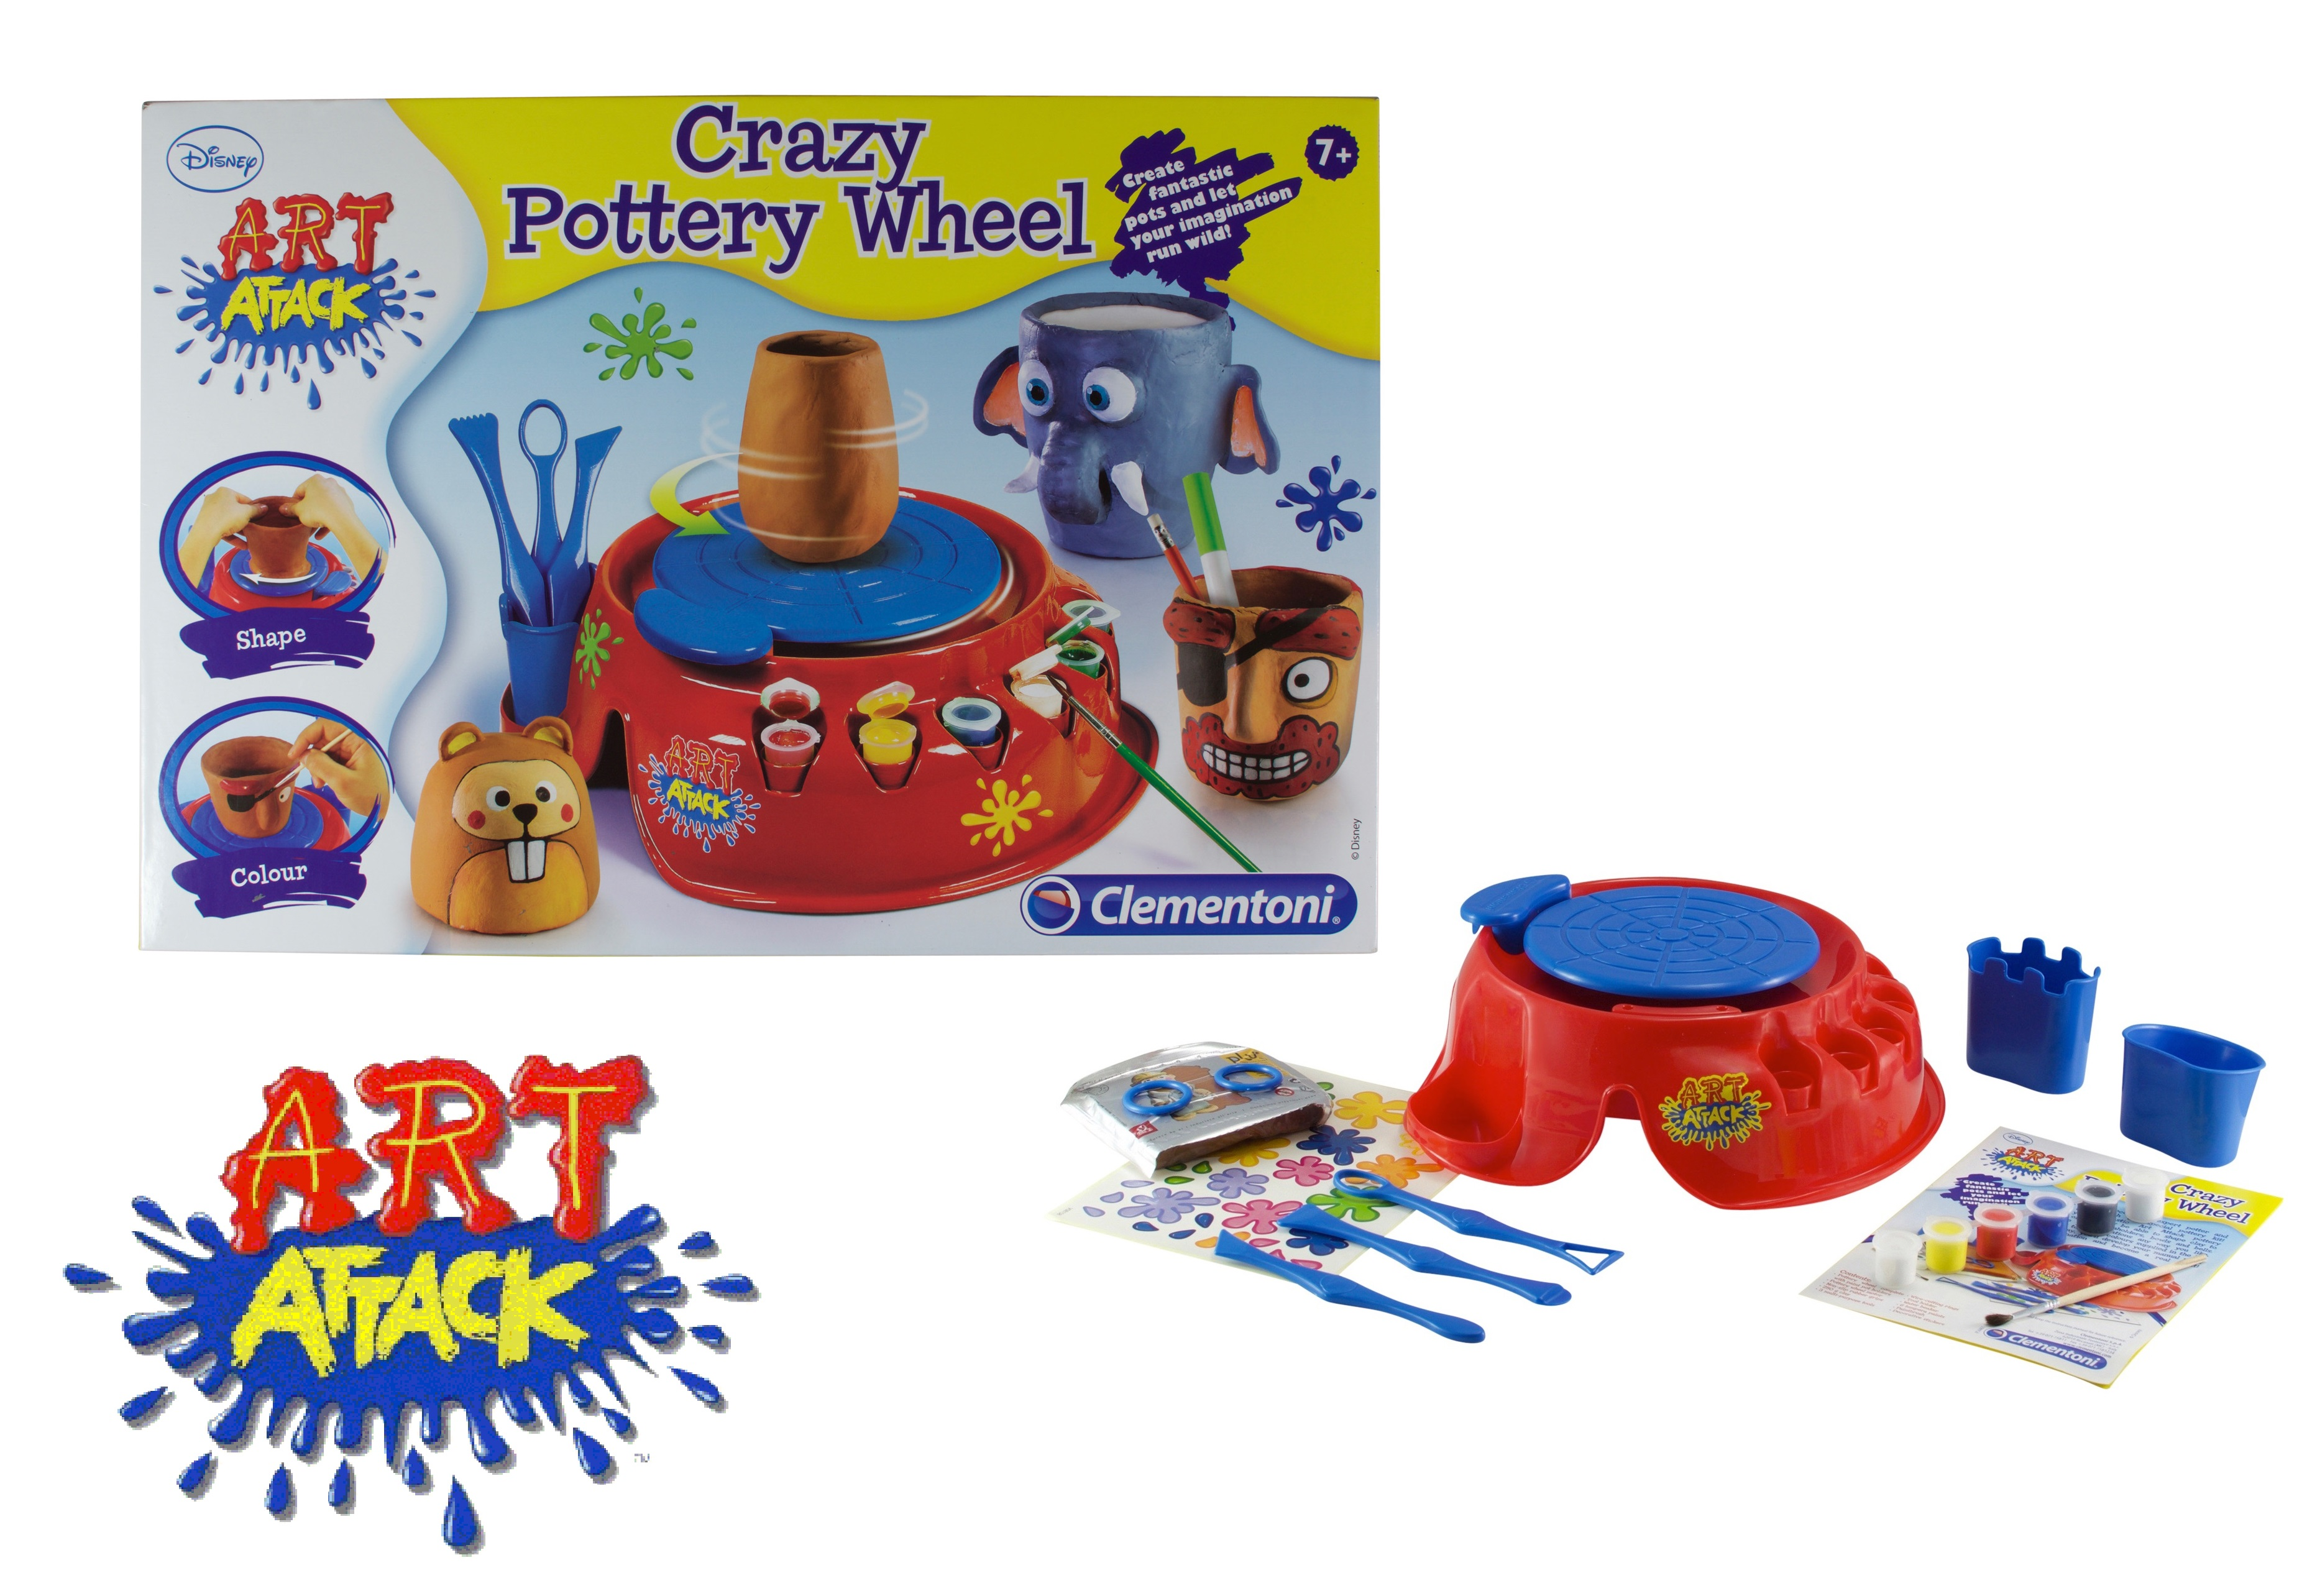 Art Attack Pottery Wheel Creative Toys Kids Gift Set Play Kit